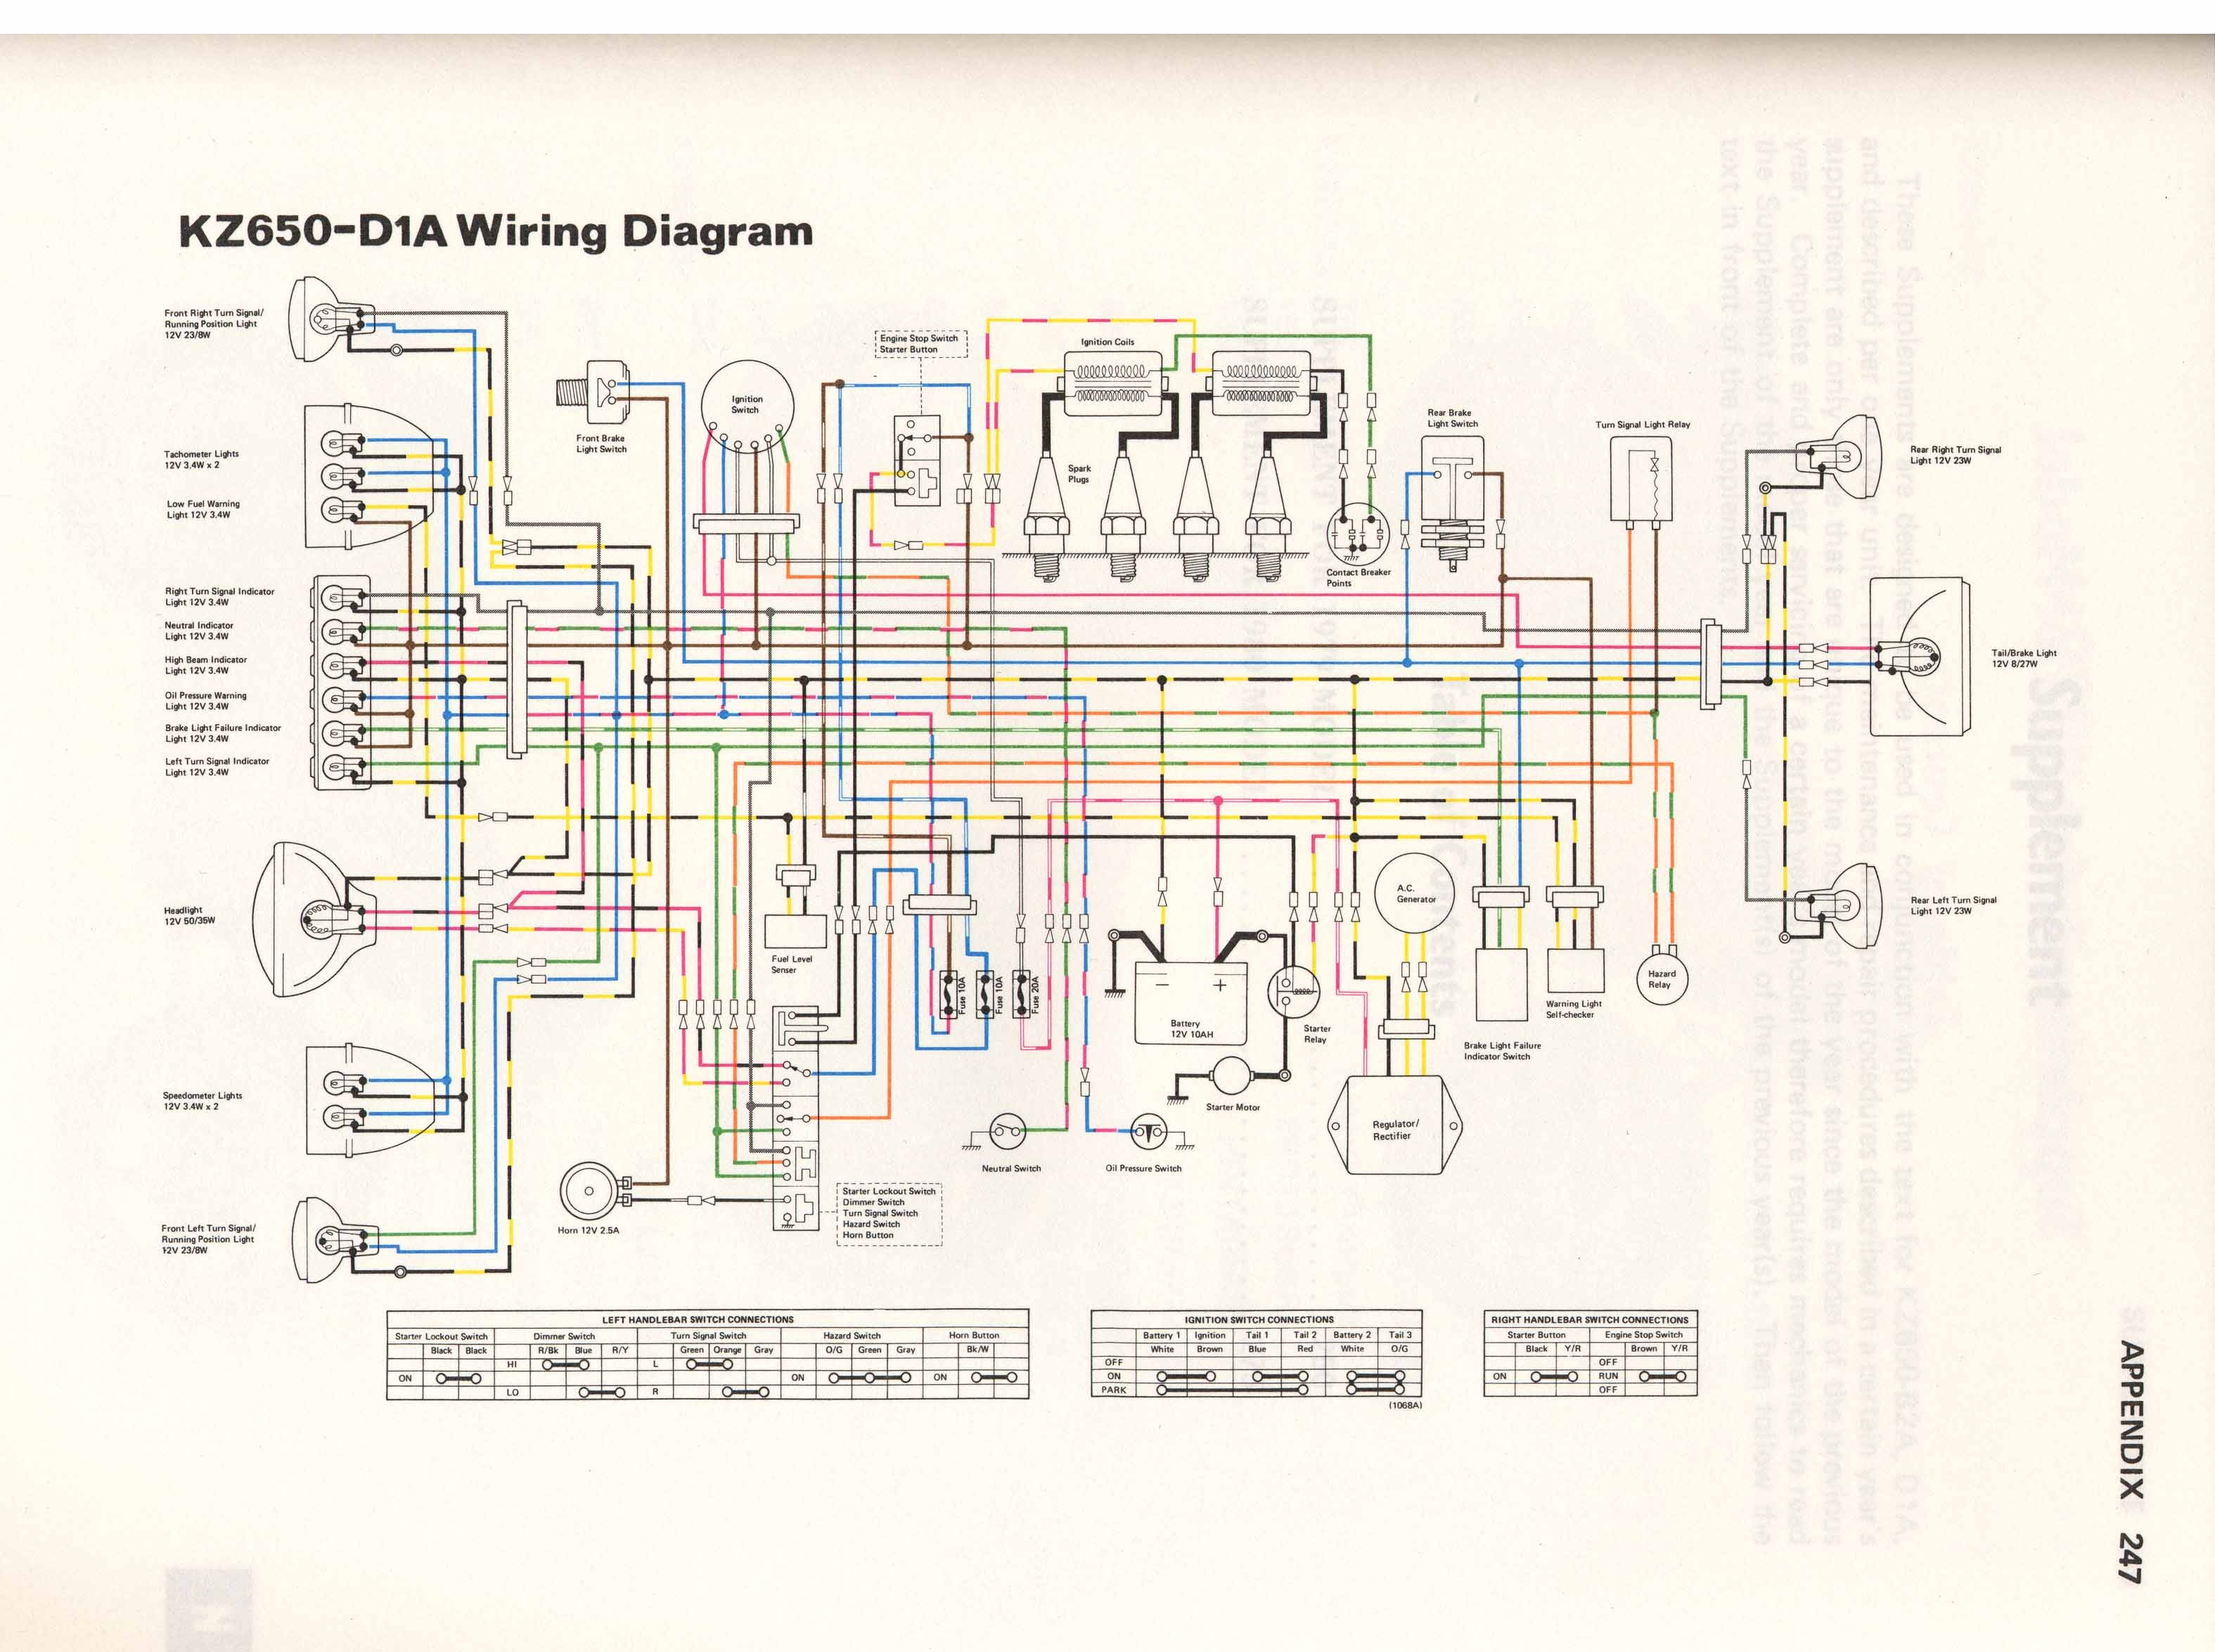 Bayou 250 Wiring Diagram In Addition Kawasaki Bayou 400 Wiring Diagram